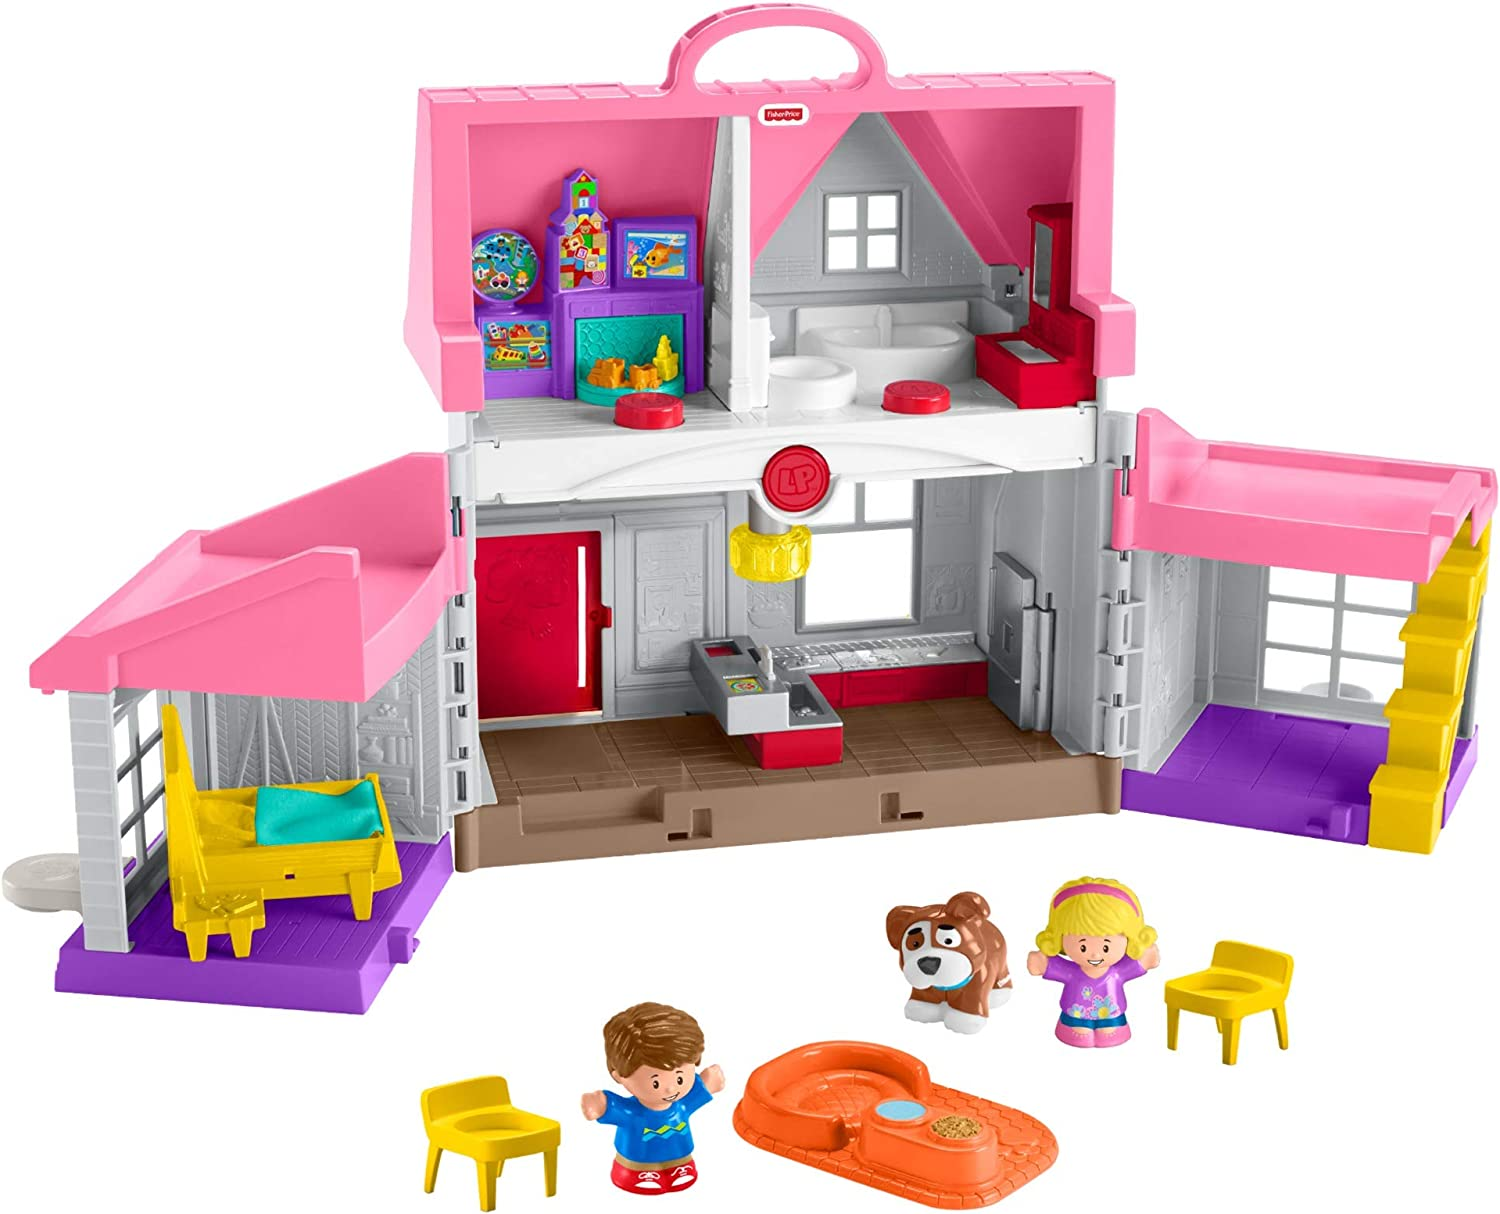 9 Best Fisher Price Dollhouse Reviews of 2021 10